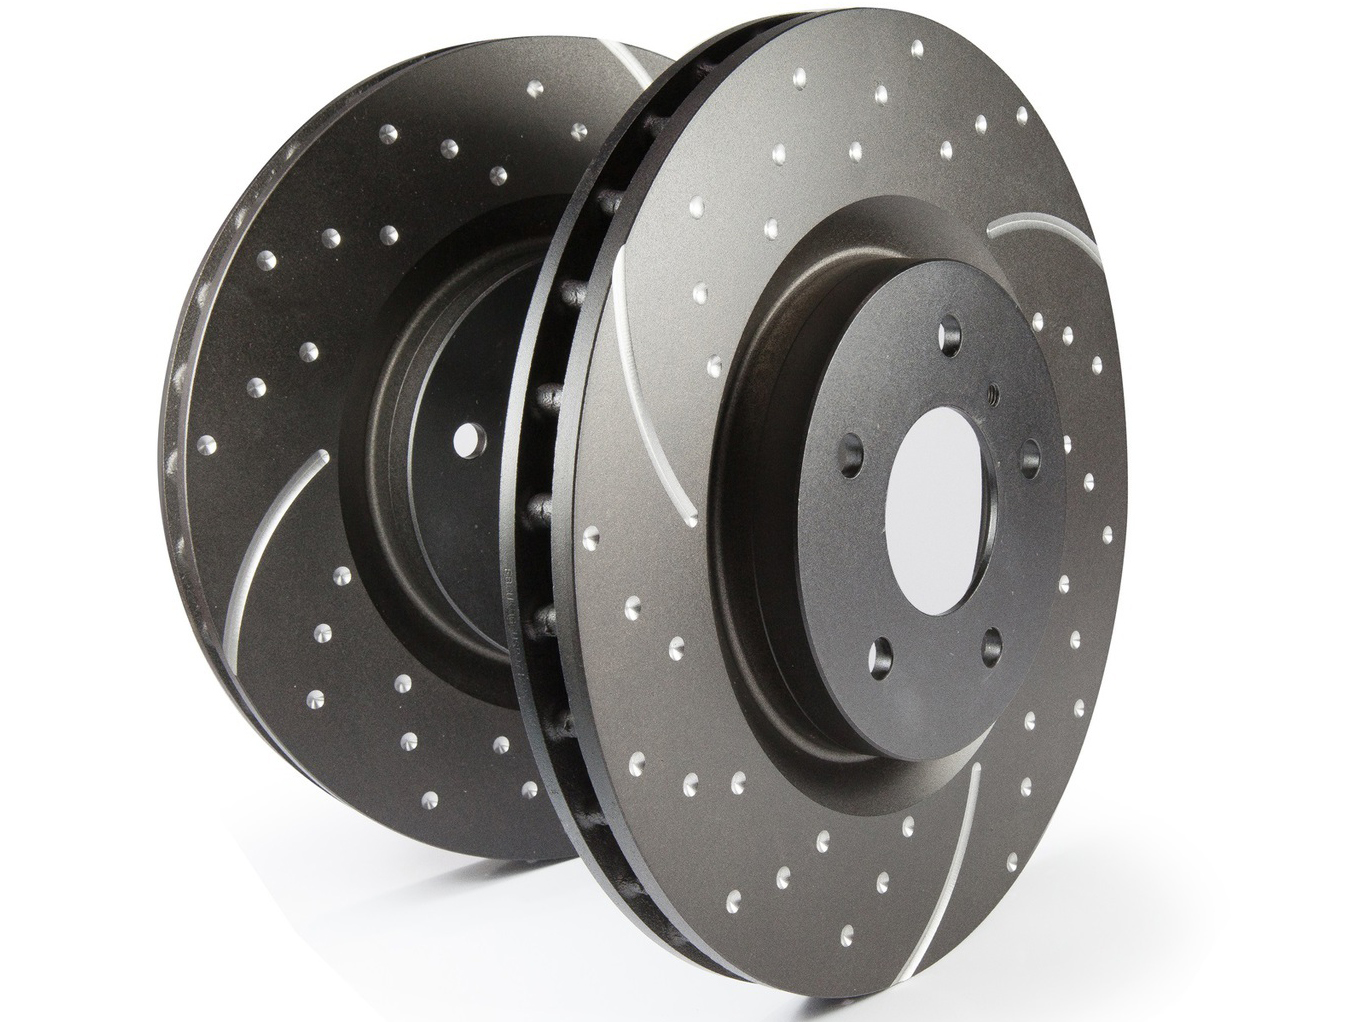 Centric Brake Pads >> EBC GD Sport R32 GTR Front Brake Rotors, Performance OEM and Aftermarket Engineered Parts Global ...